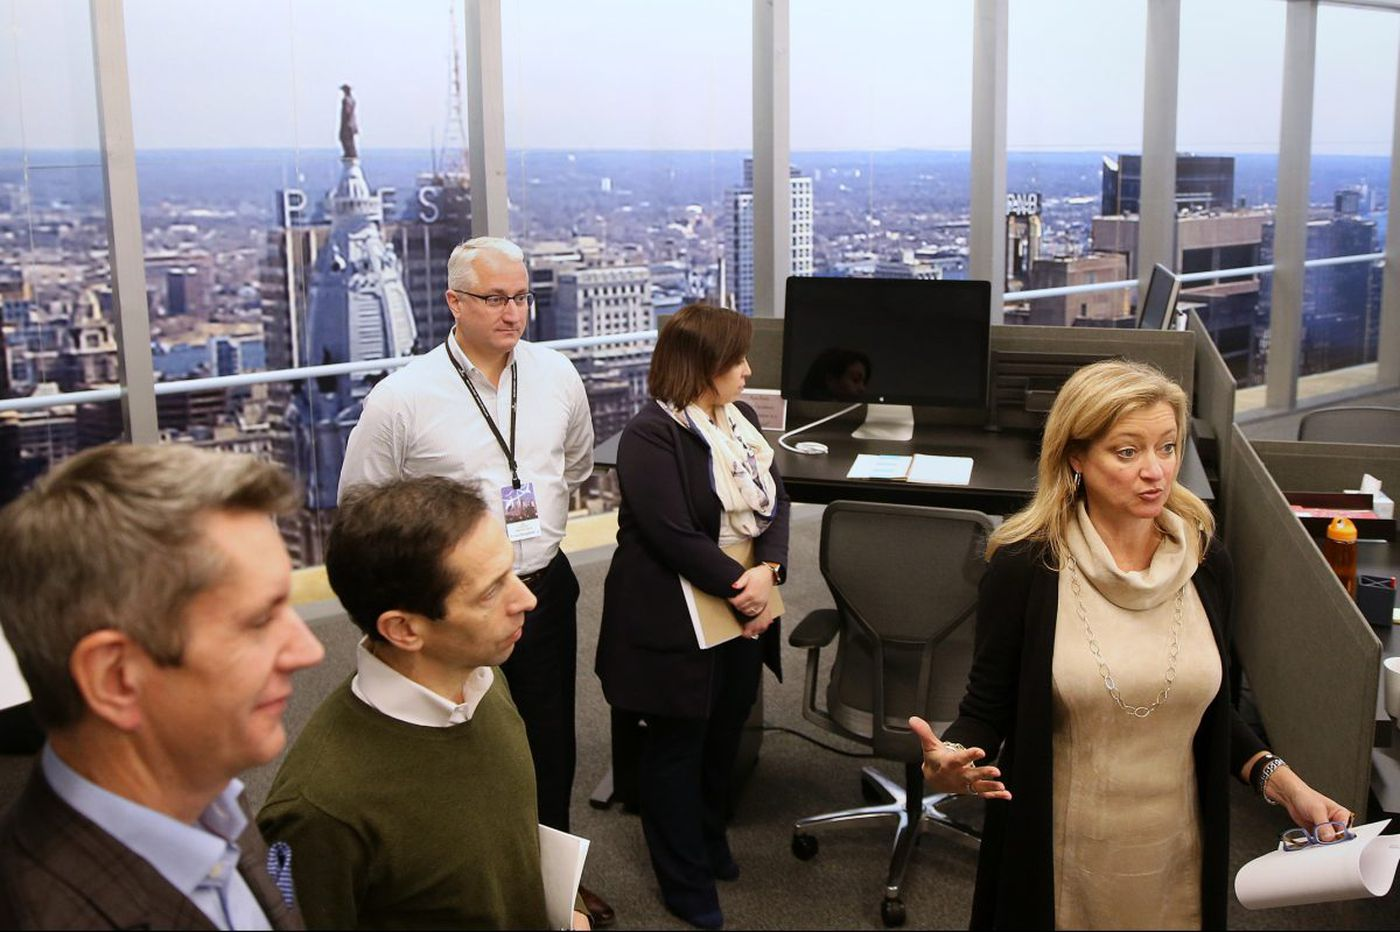 Comcast tests out its new 60-story tower in converted Horsham office complex